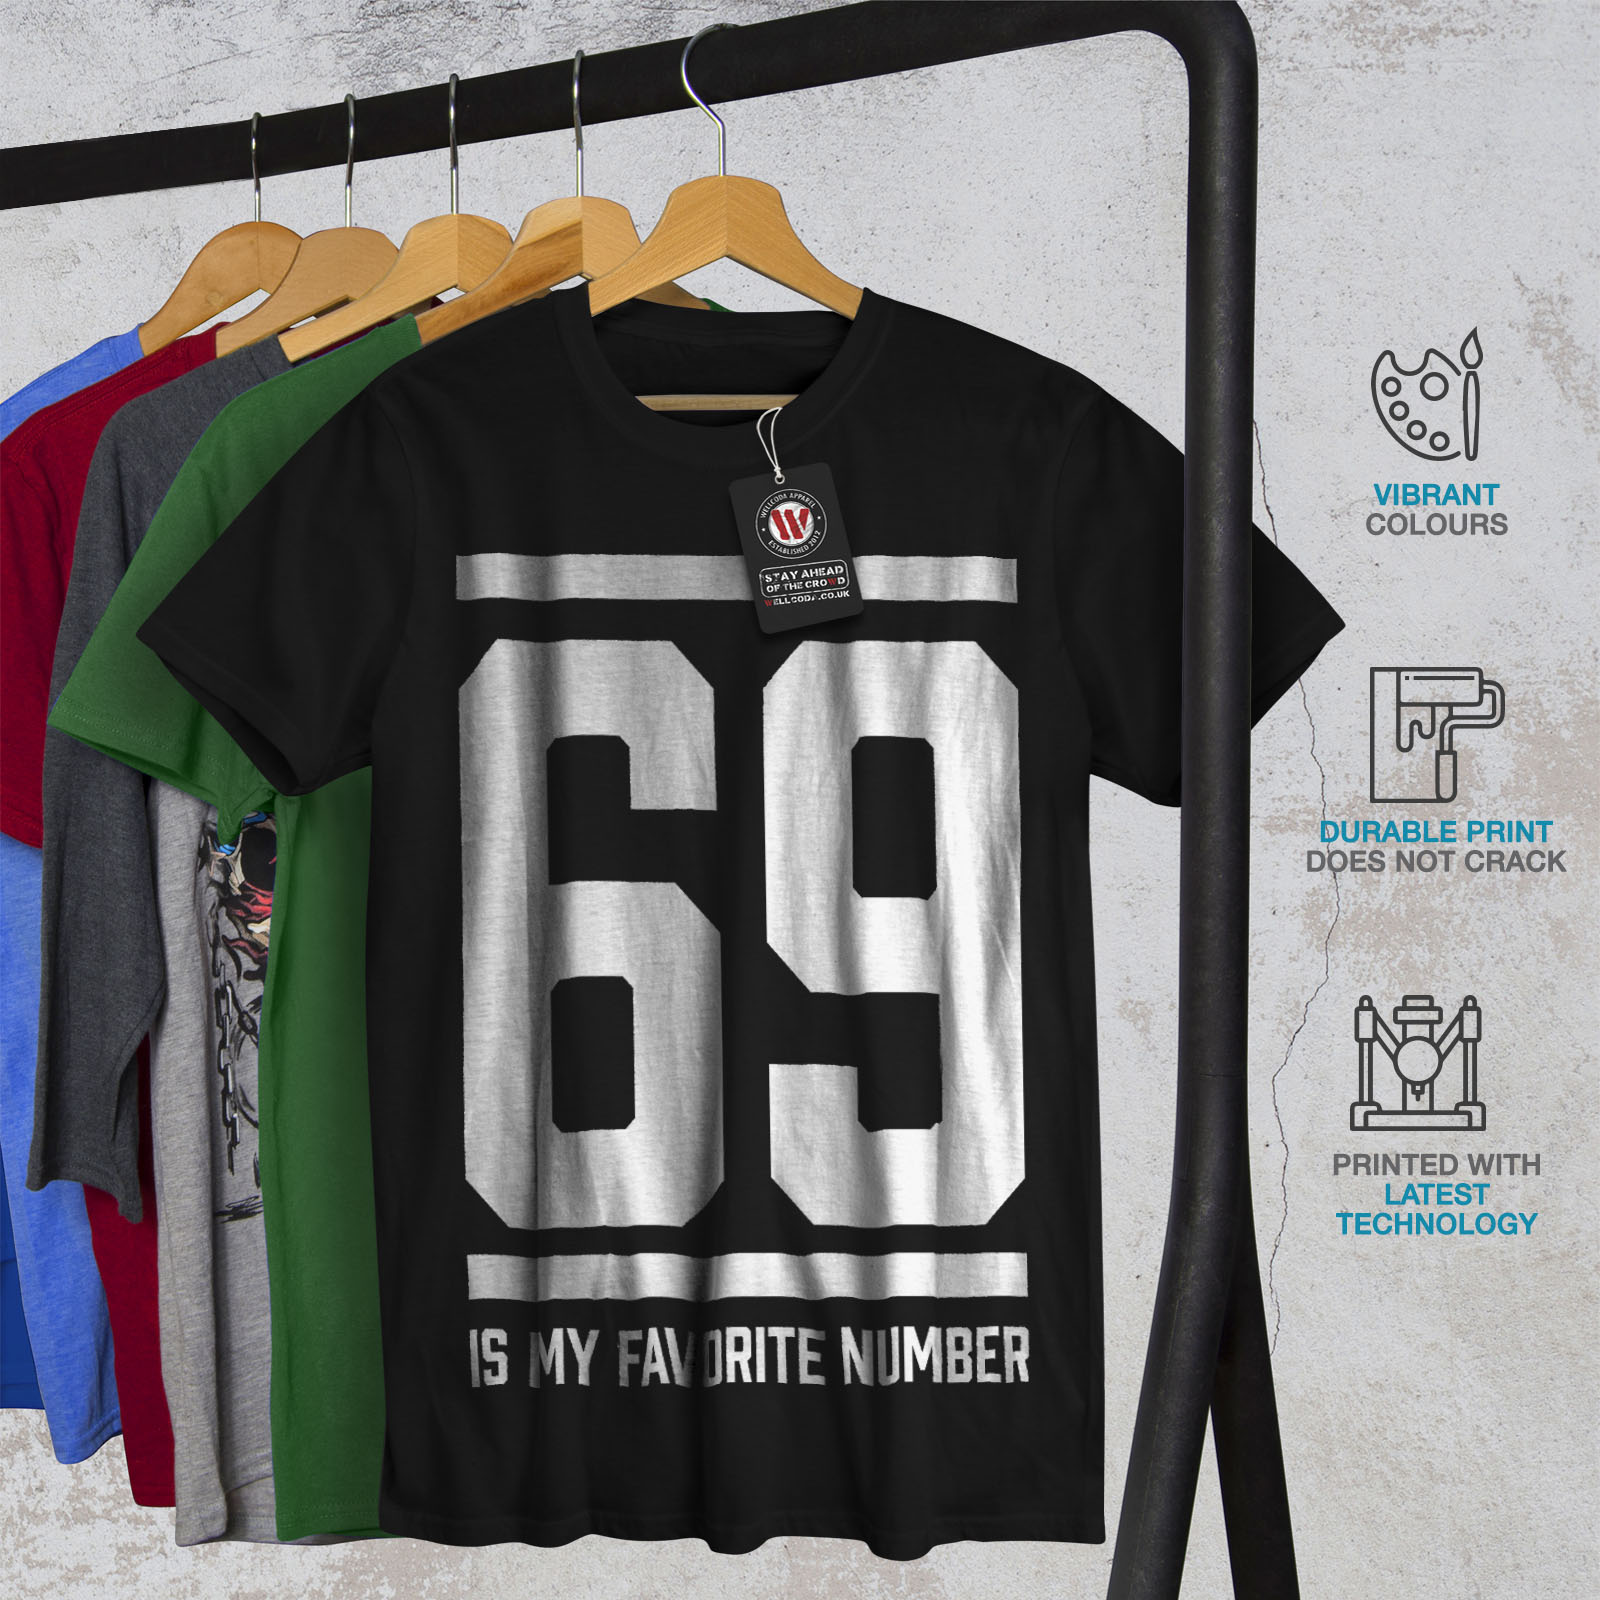 Wellcoda-69-Favorite-Number-Mens-T-shirt-Sports-Graphic-Design-Printed-Tee thumbnail 6